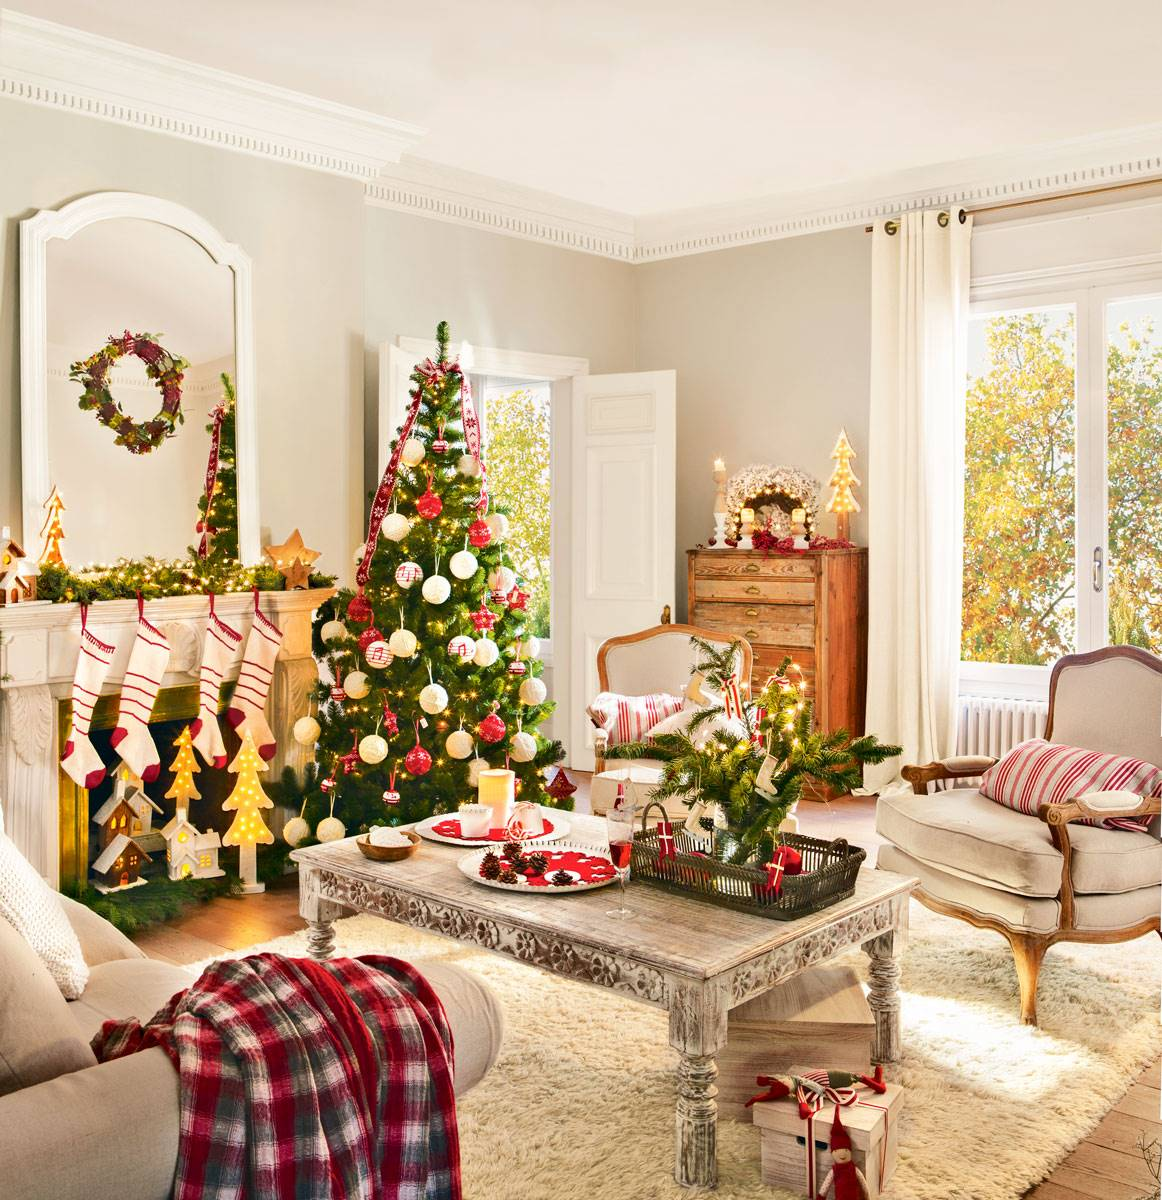 arbol de navidad junto chimenea con calcetines 394990 73b7af3d 1162x1200 - Get inspired with these Christmas trees and decorate your perfect tree